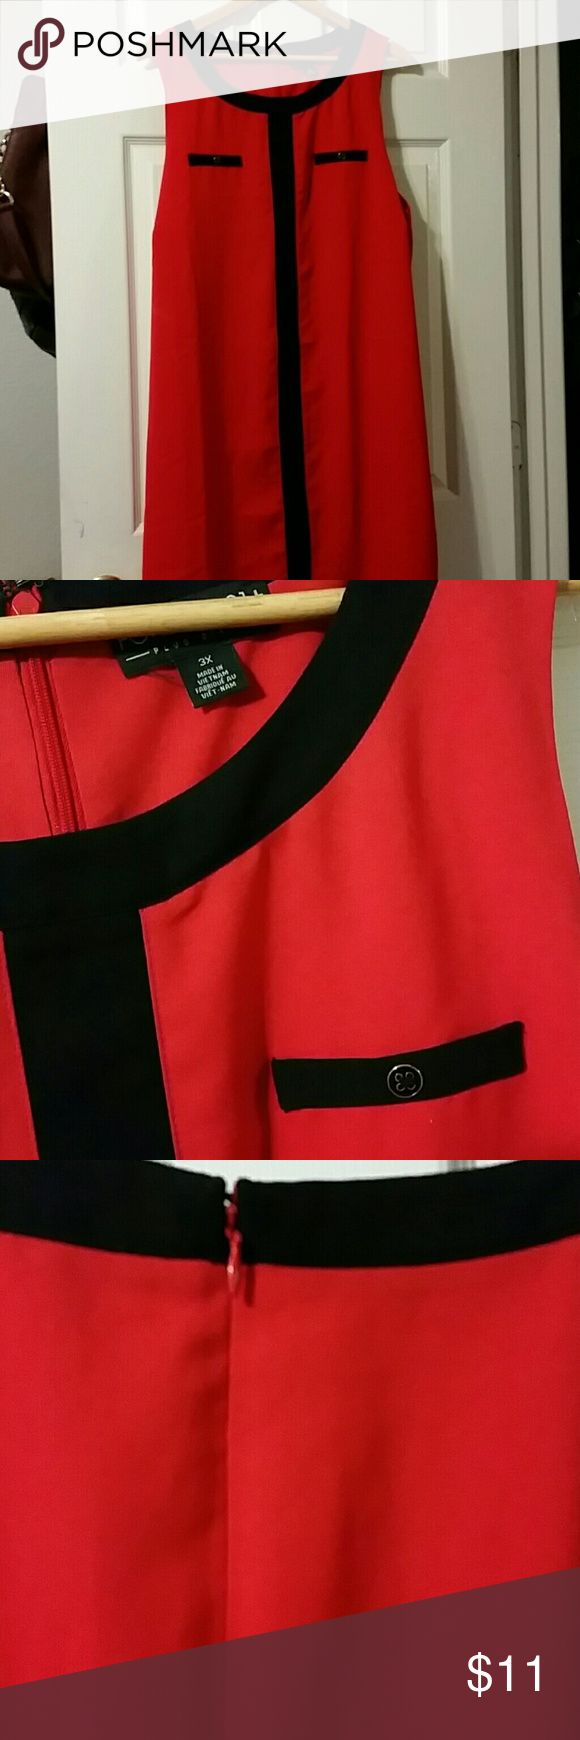 Dress Plus size Red and black sleeveless dress with faux pocket detail Forever 21 3x never been worn Forever 21 Dresses Midi